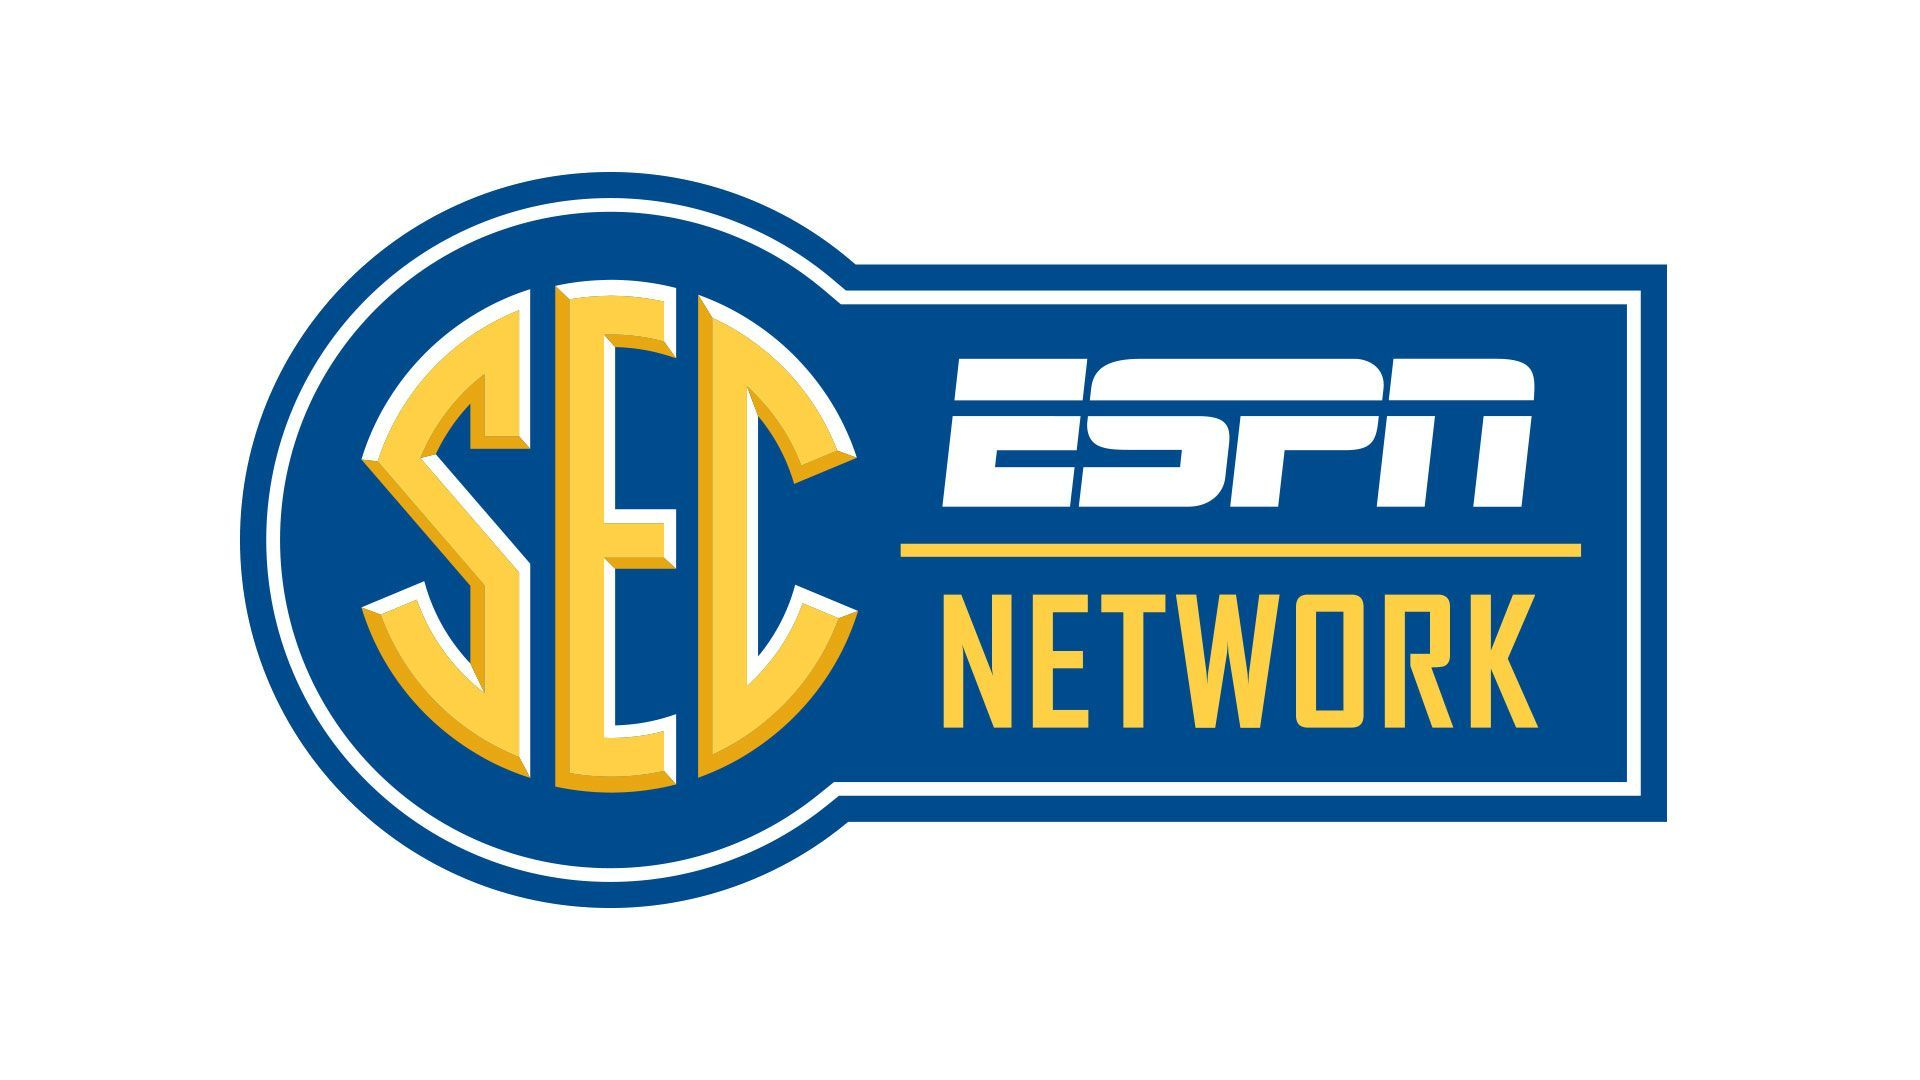 C Spire will include the SEC Network as part of its new digital HD television service.